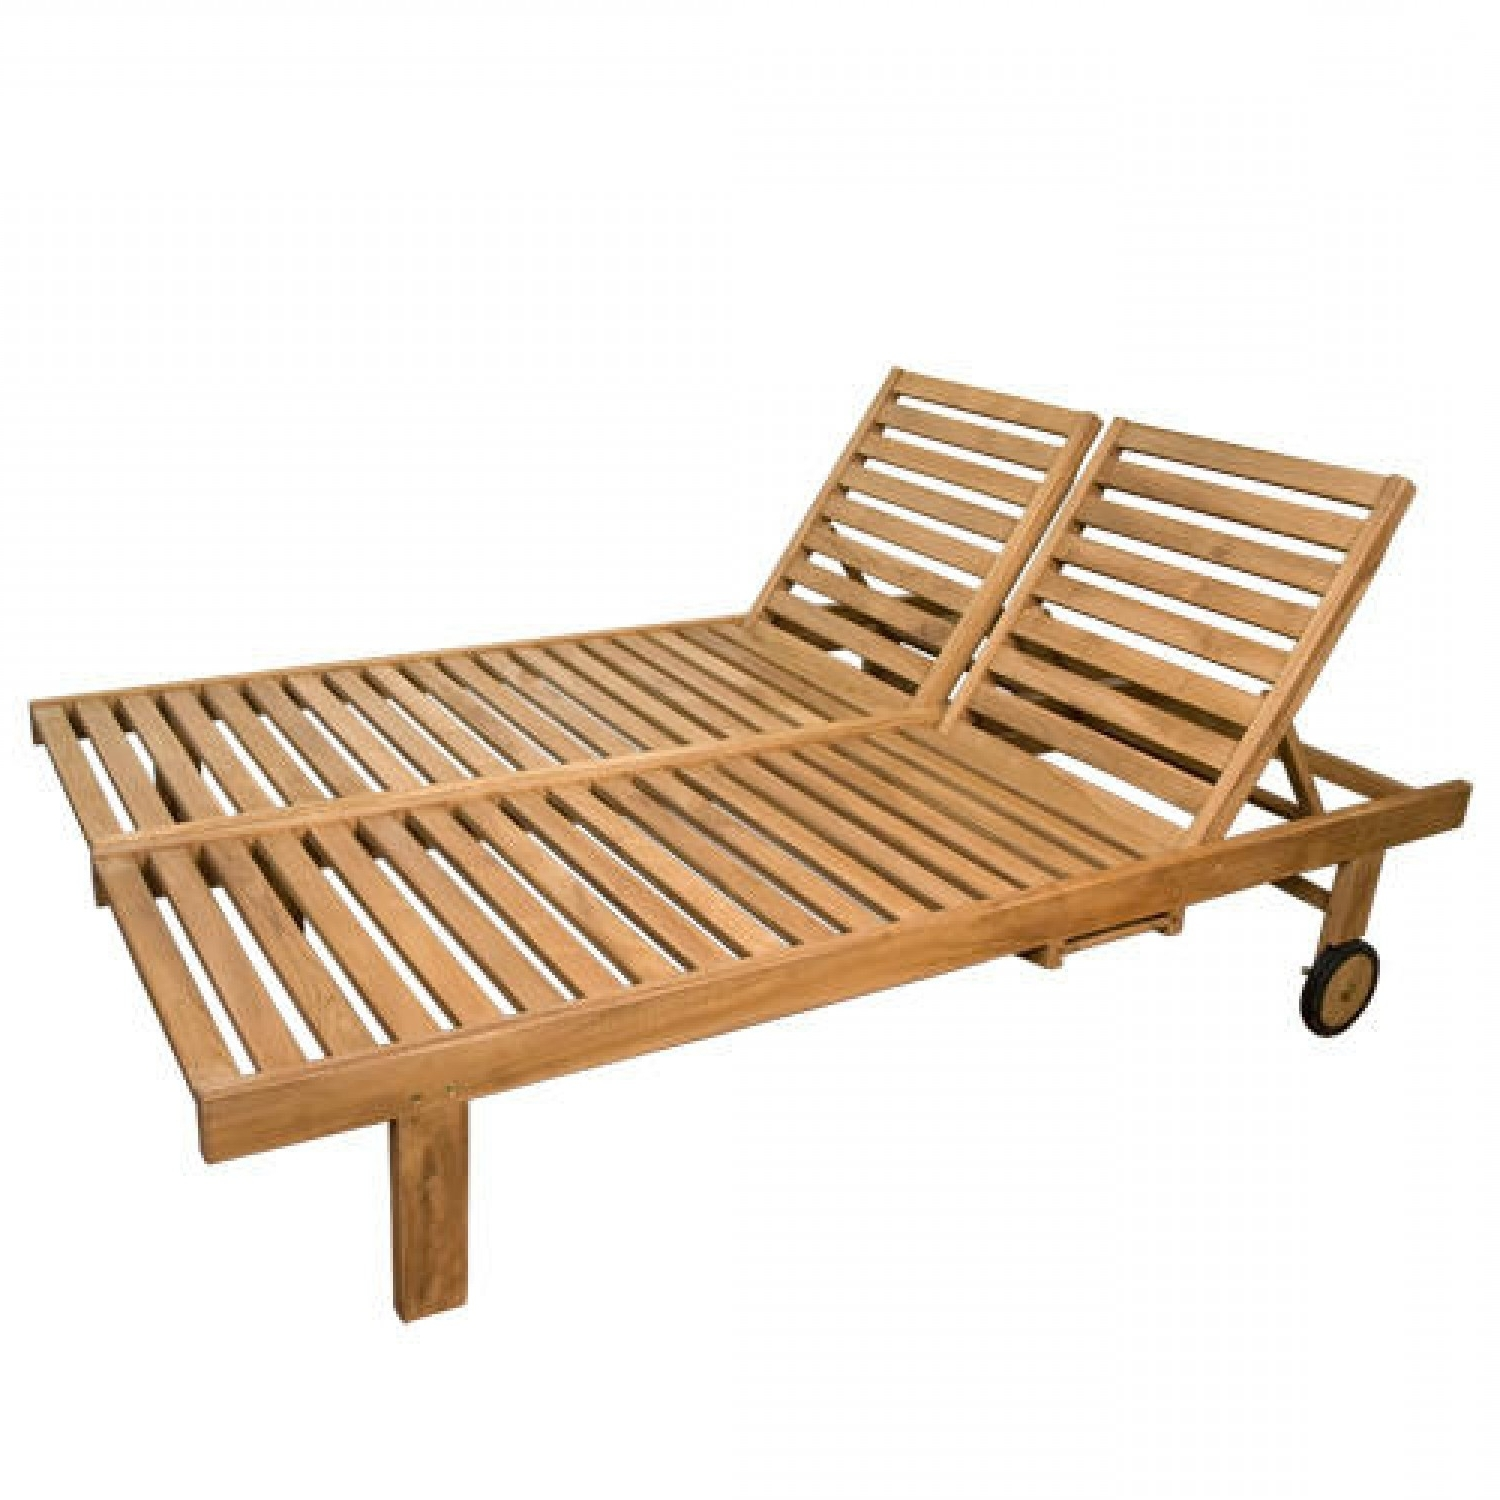 2018 Hardwood Chaise Lounge Chairs Intended For Convertible Chair : Outdoor Dining Chairs Teak Chaise Lounge (View 6 of 15)